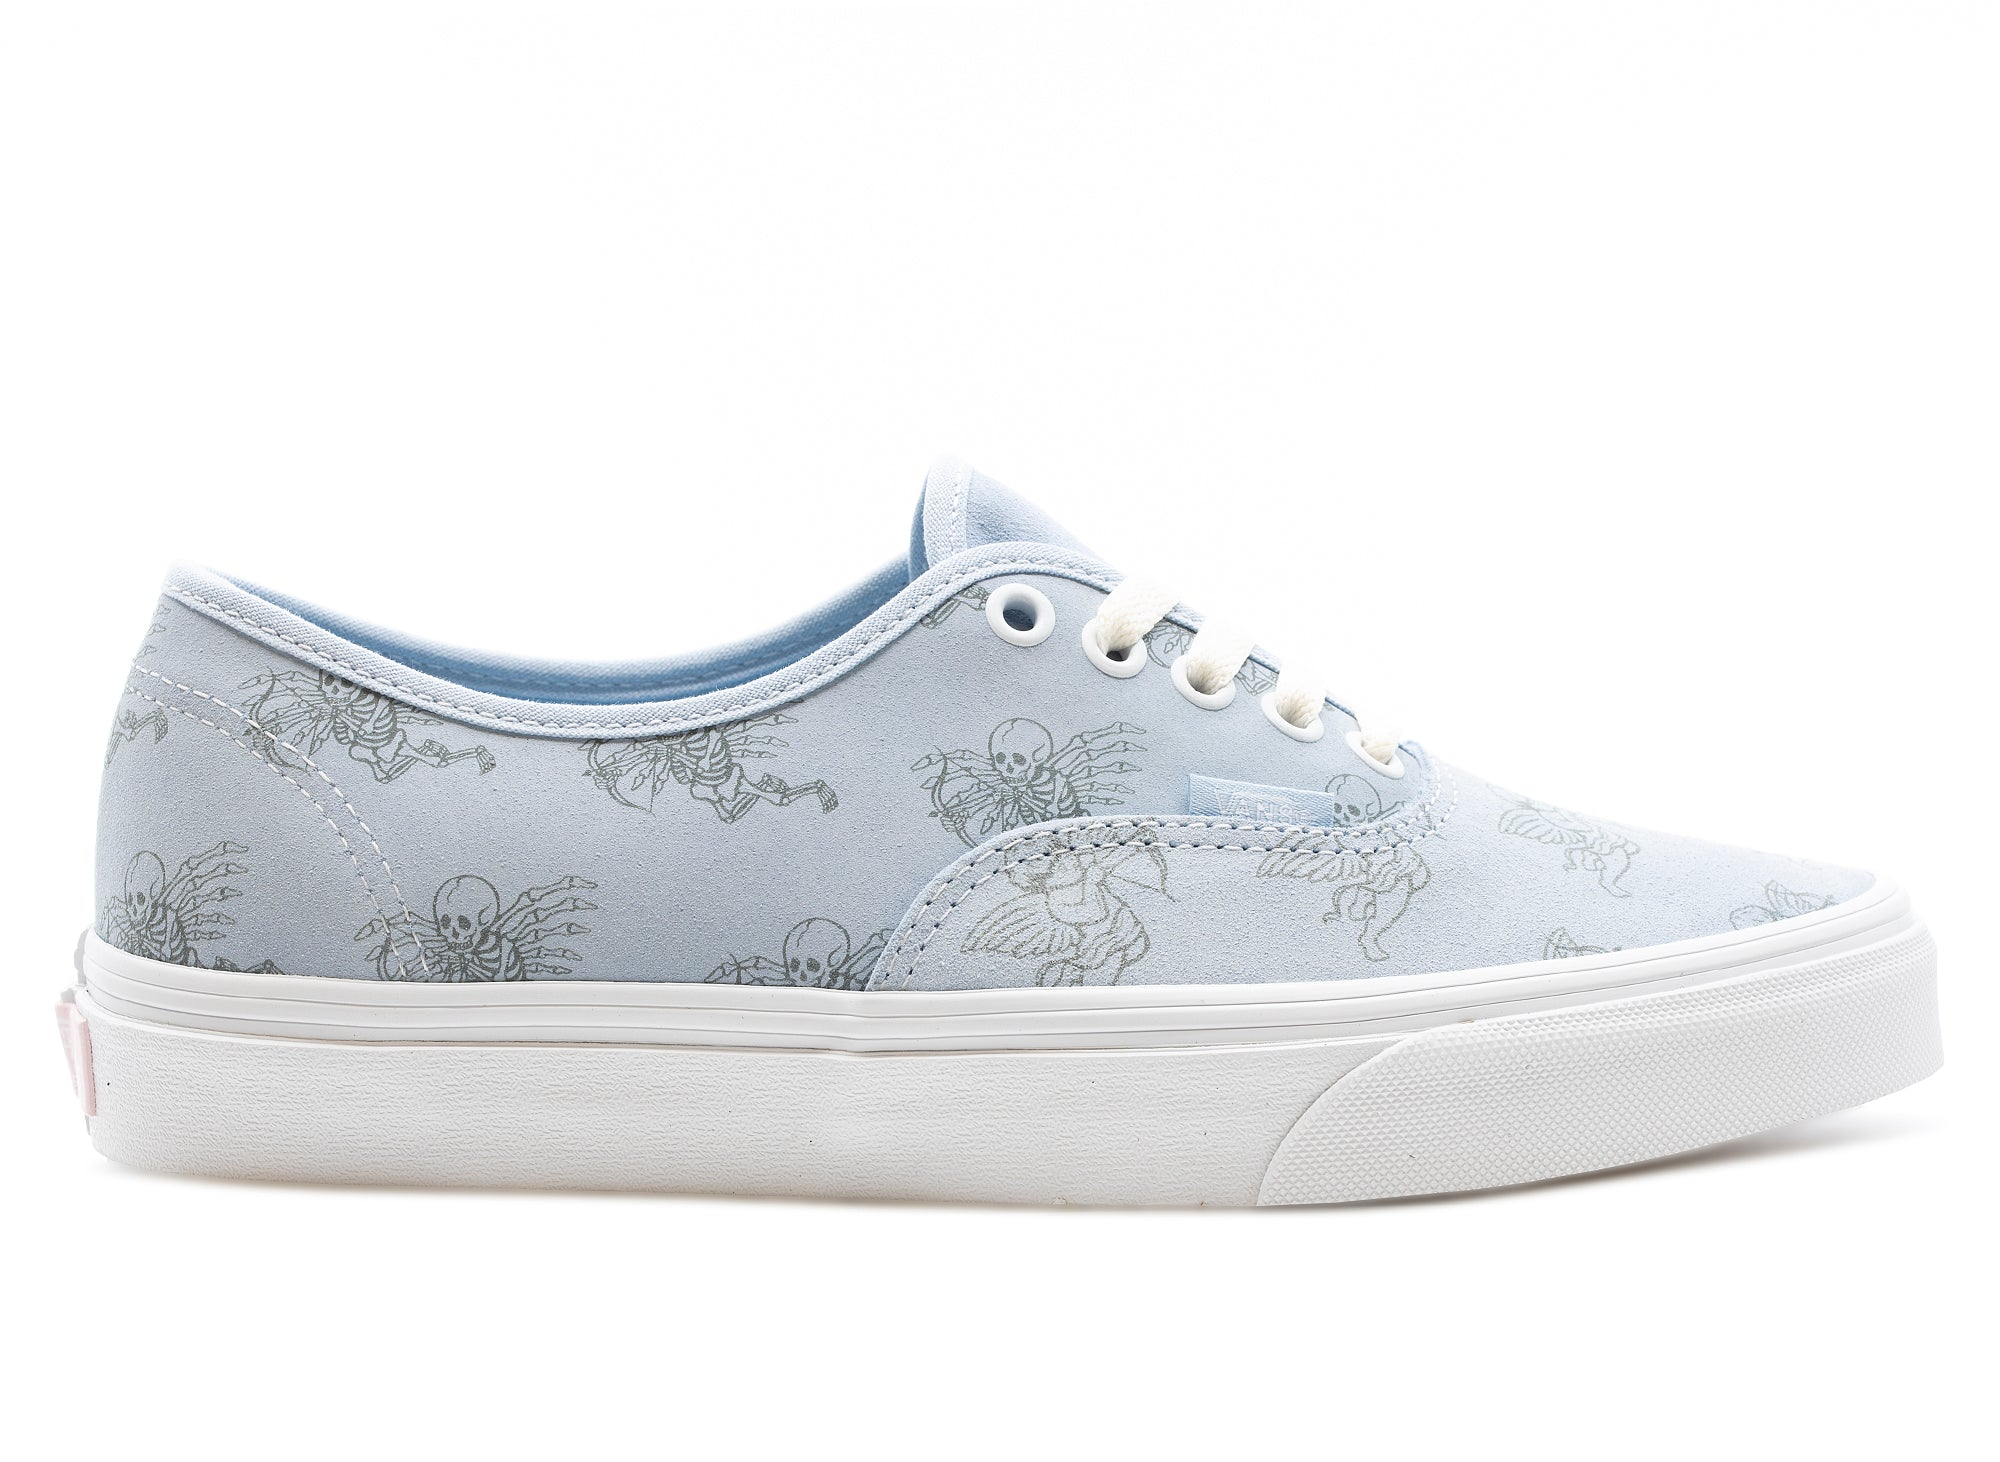 Vans Authentic 'Love You to Death' xld